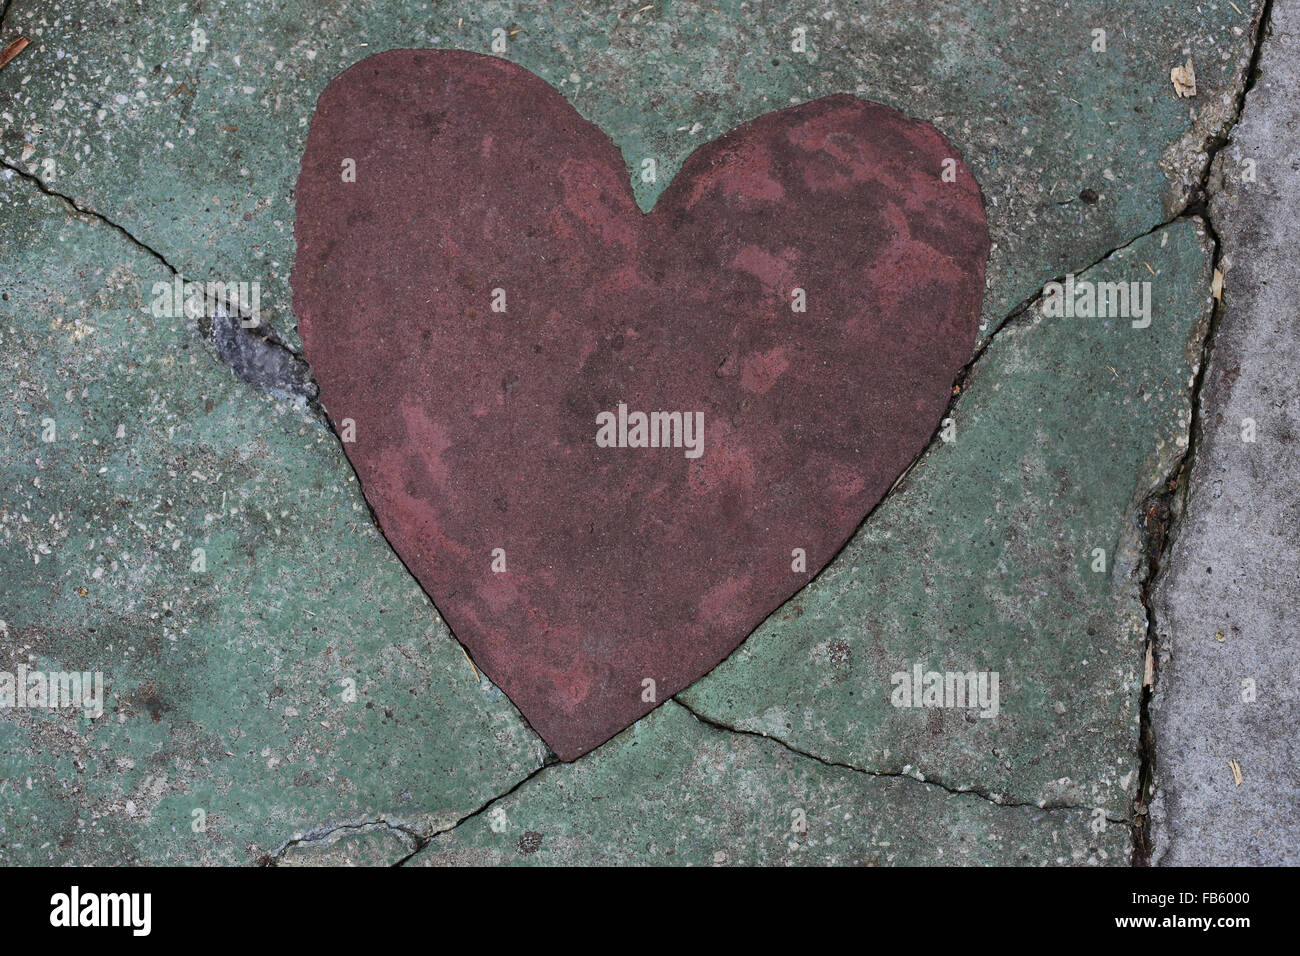 A heart shape in a cracked sidewalk. - Stock Image